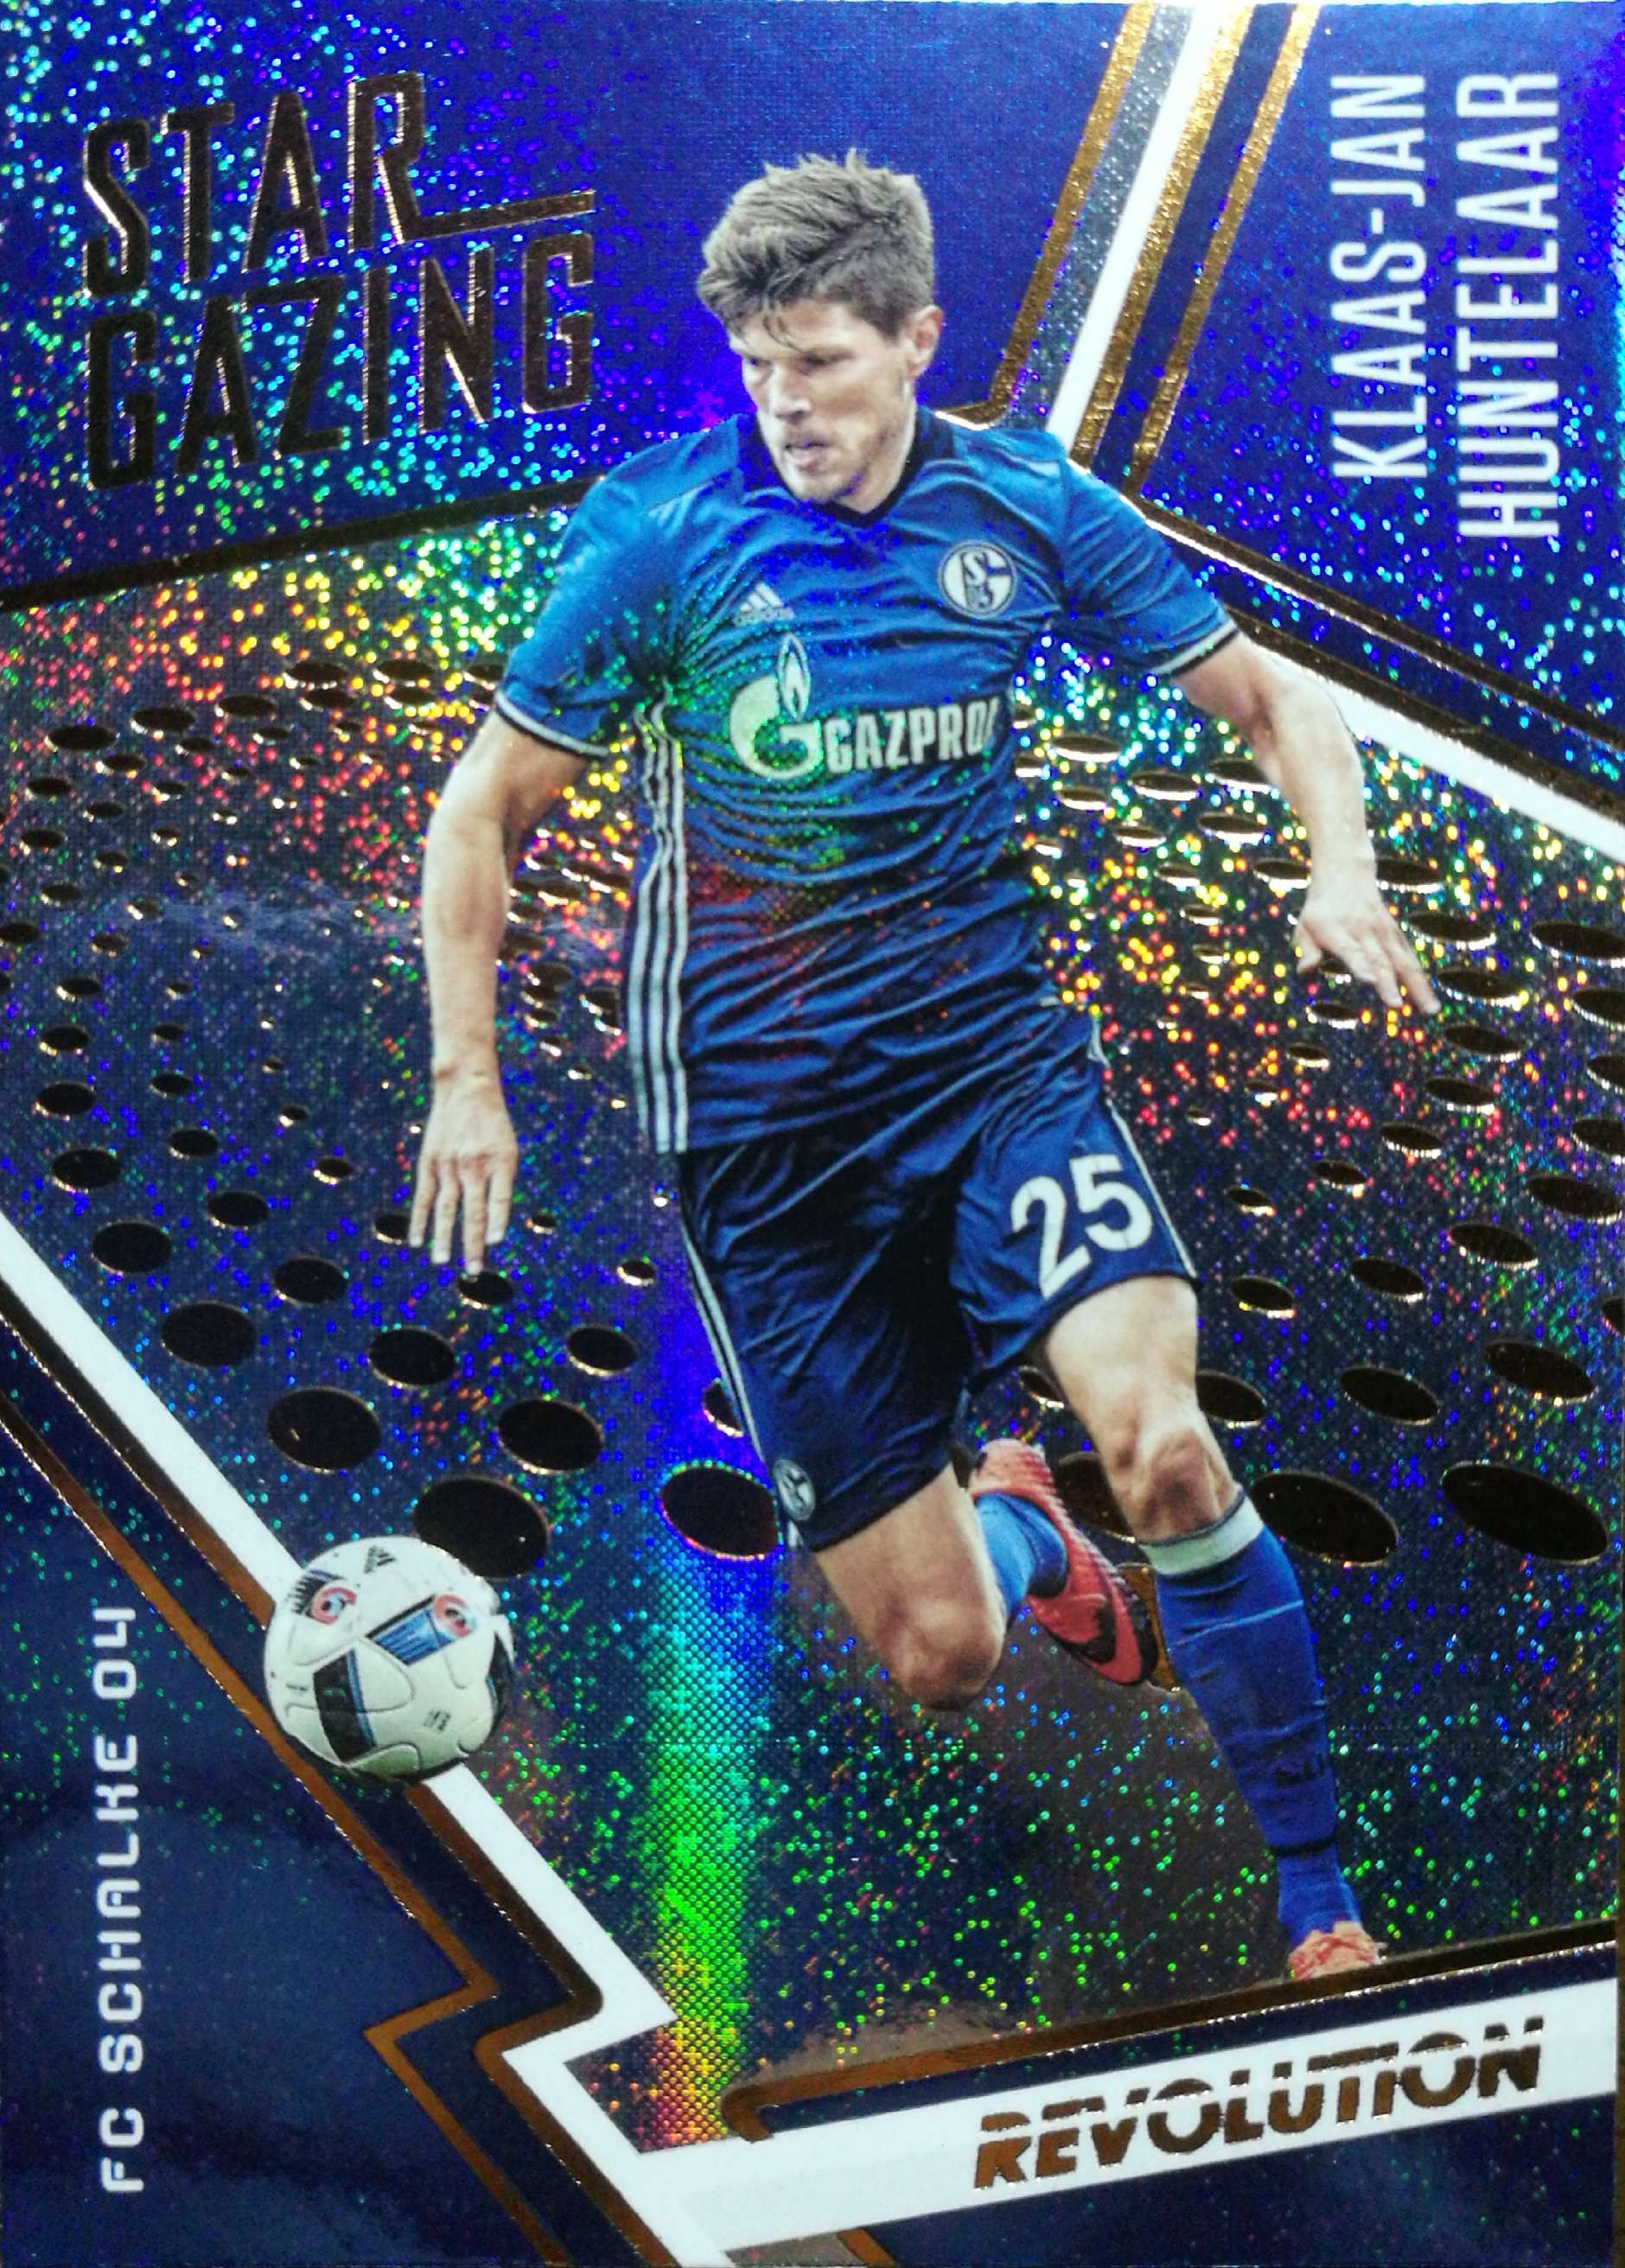 【Ed】 2017 Panini 革命足球 球星卡 克拉斯·扬·亨特拉尔 Klaas-Jan Huntelaar 沙尔克04 NO.16 观星特卡